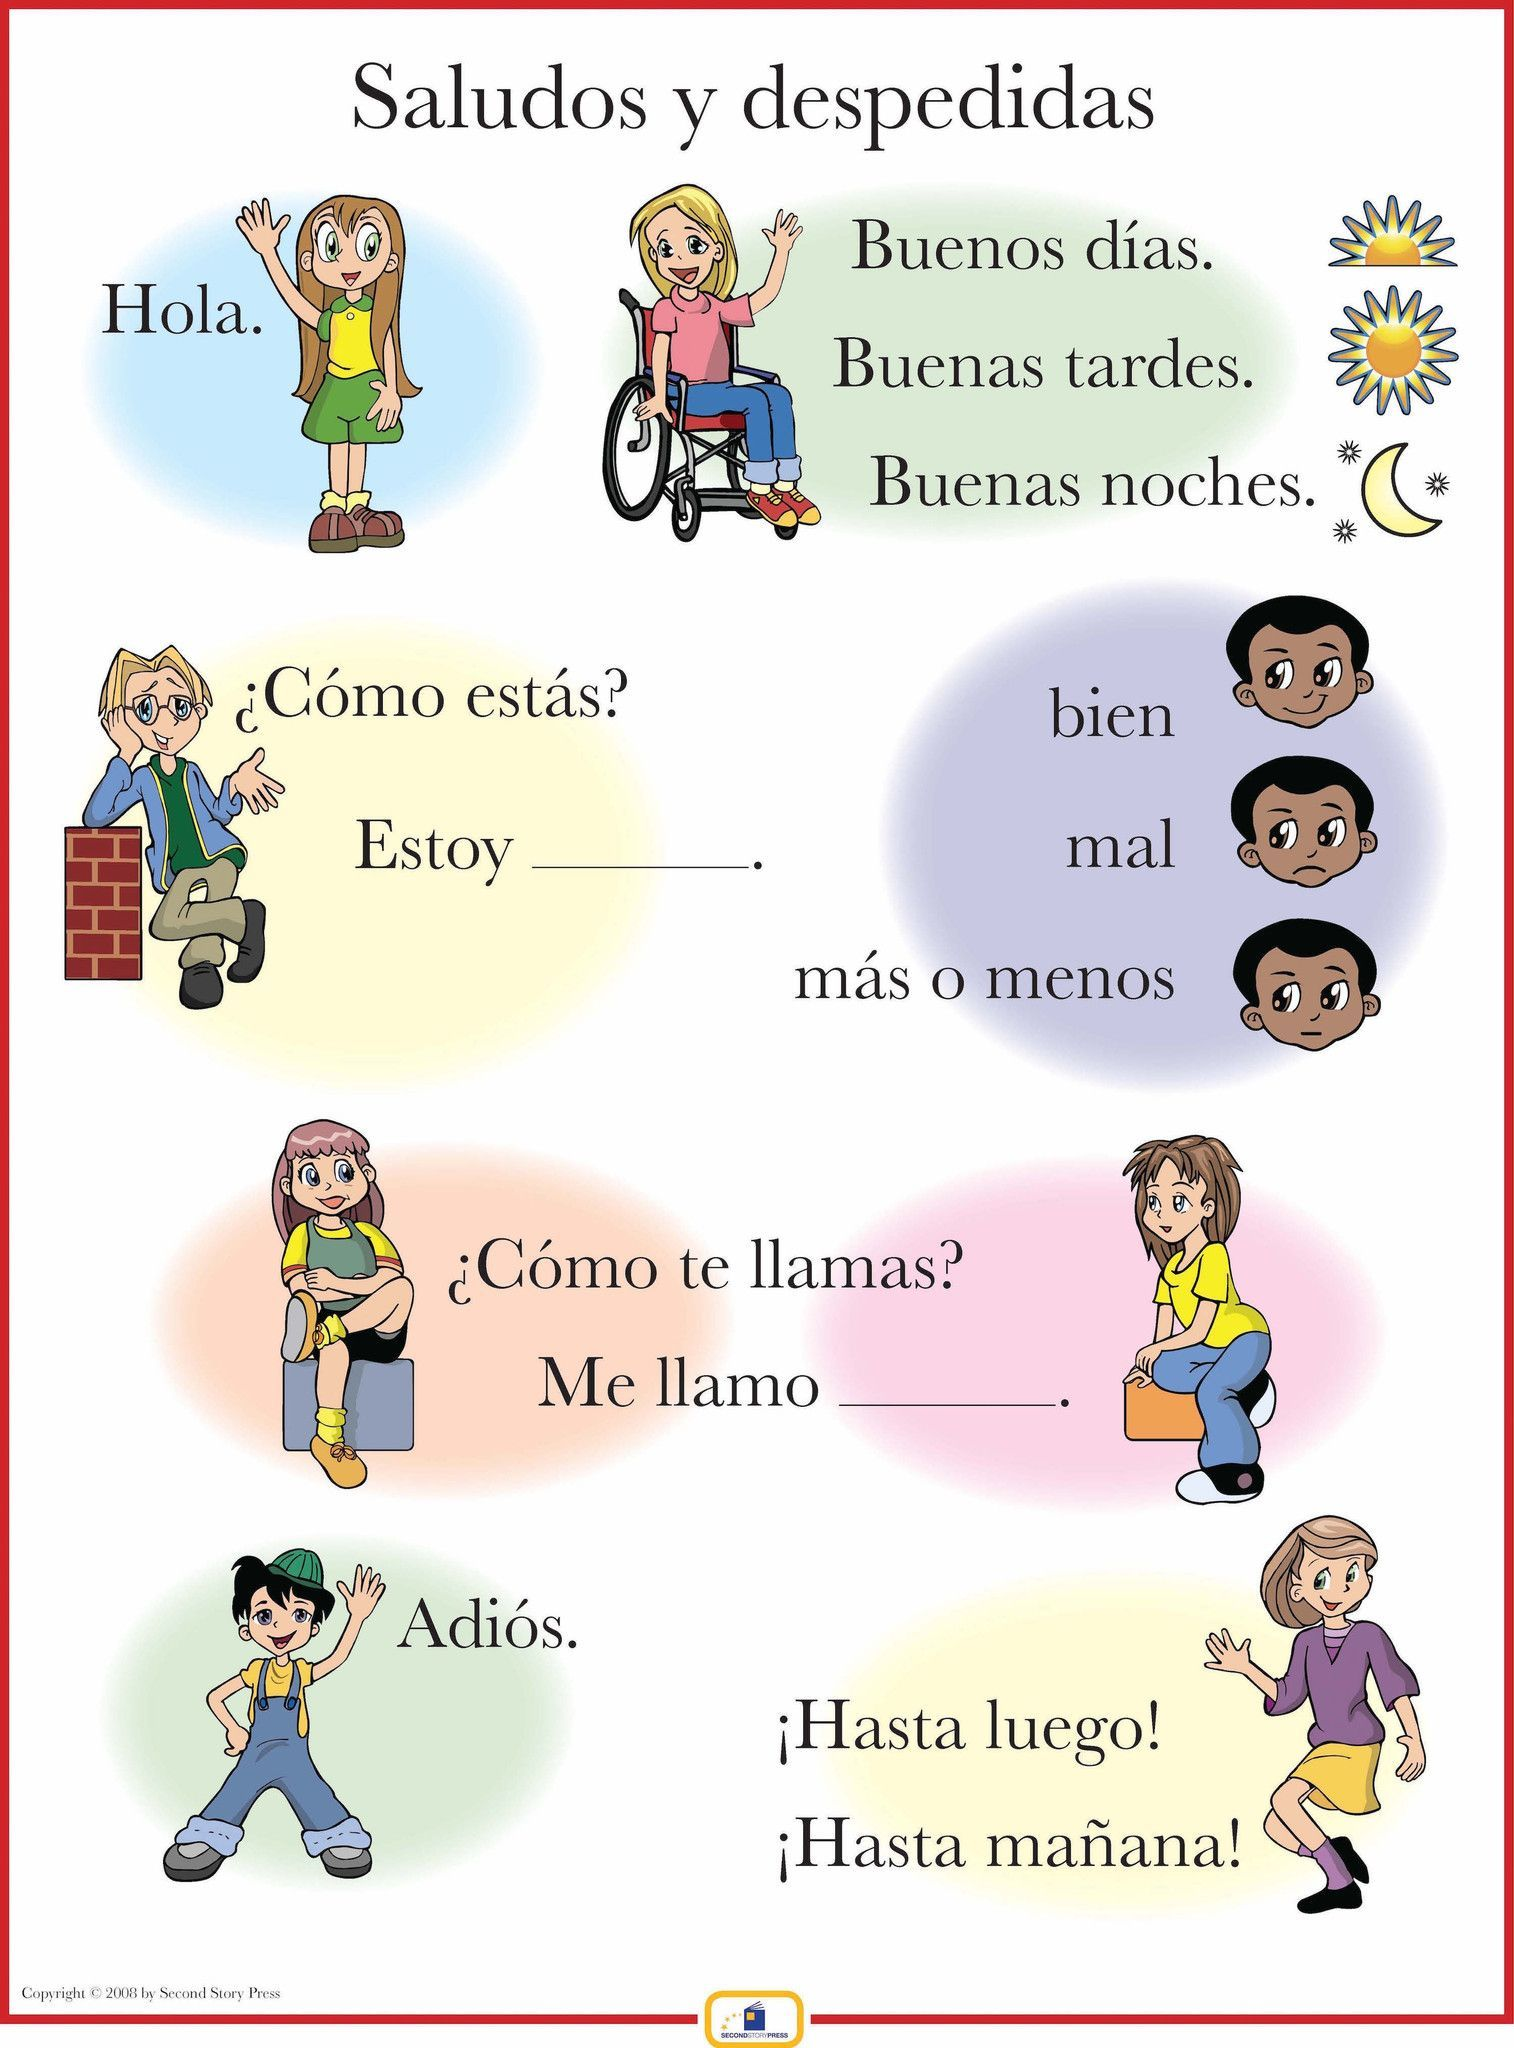 Easy Way To Speak Spanish